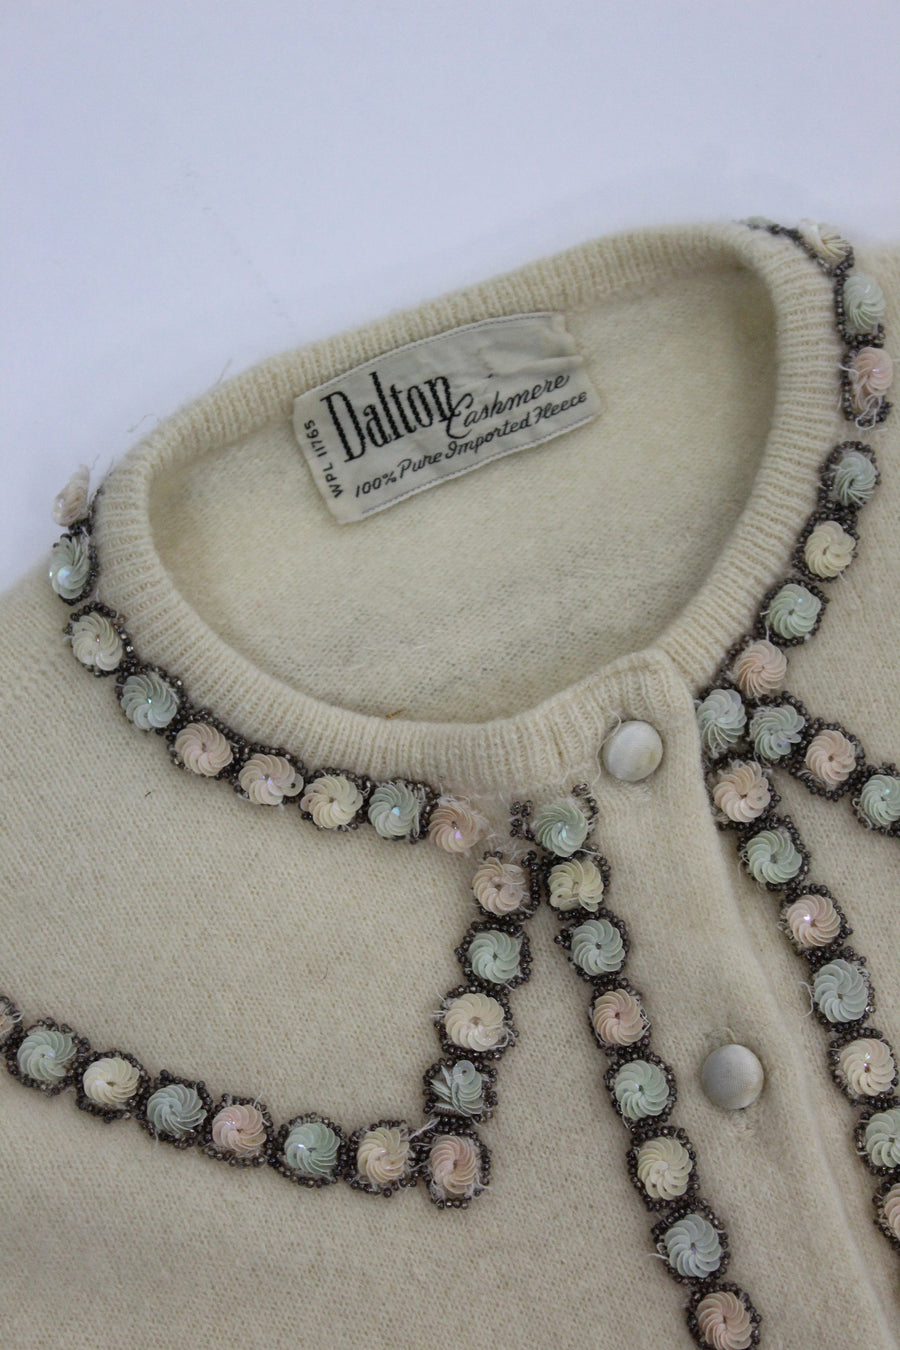 1950s Dalton cashmere cardigan small | vintage beaded sweater | new in